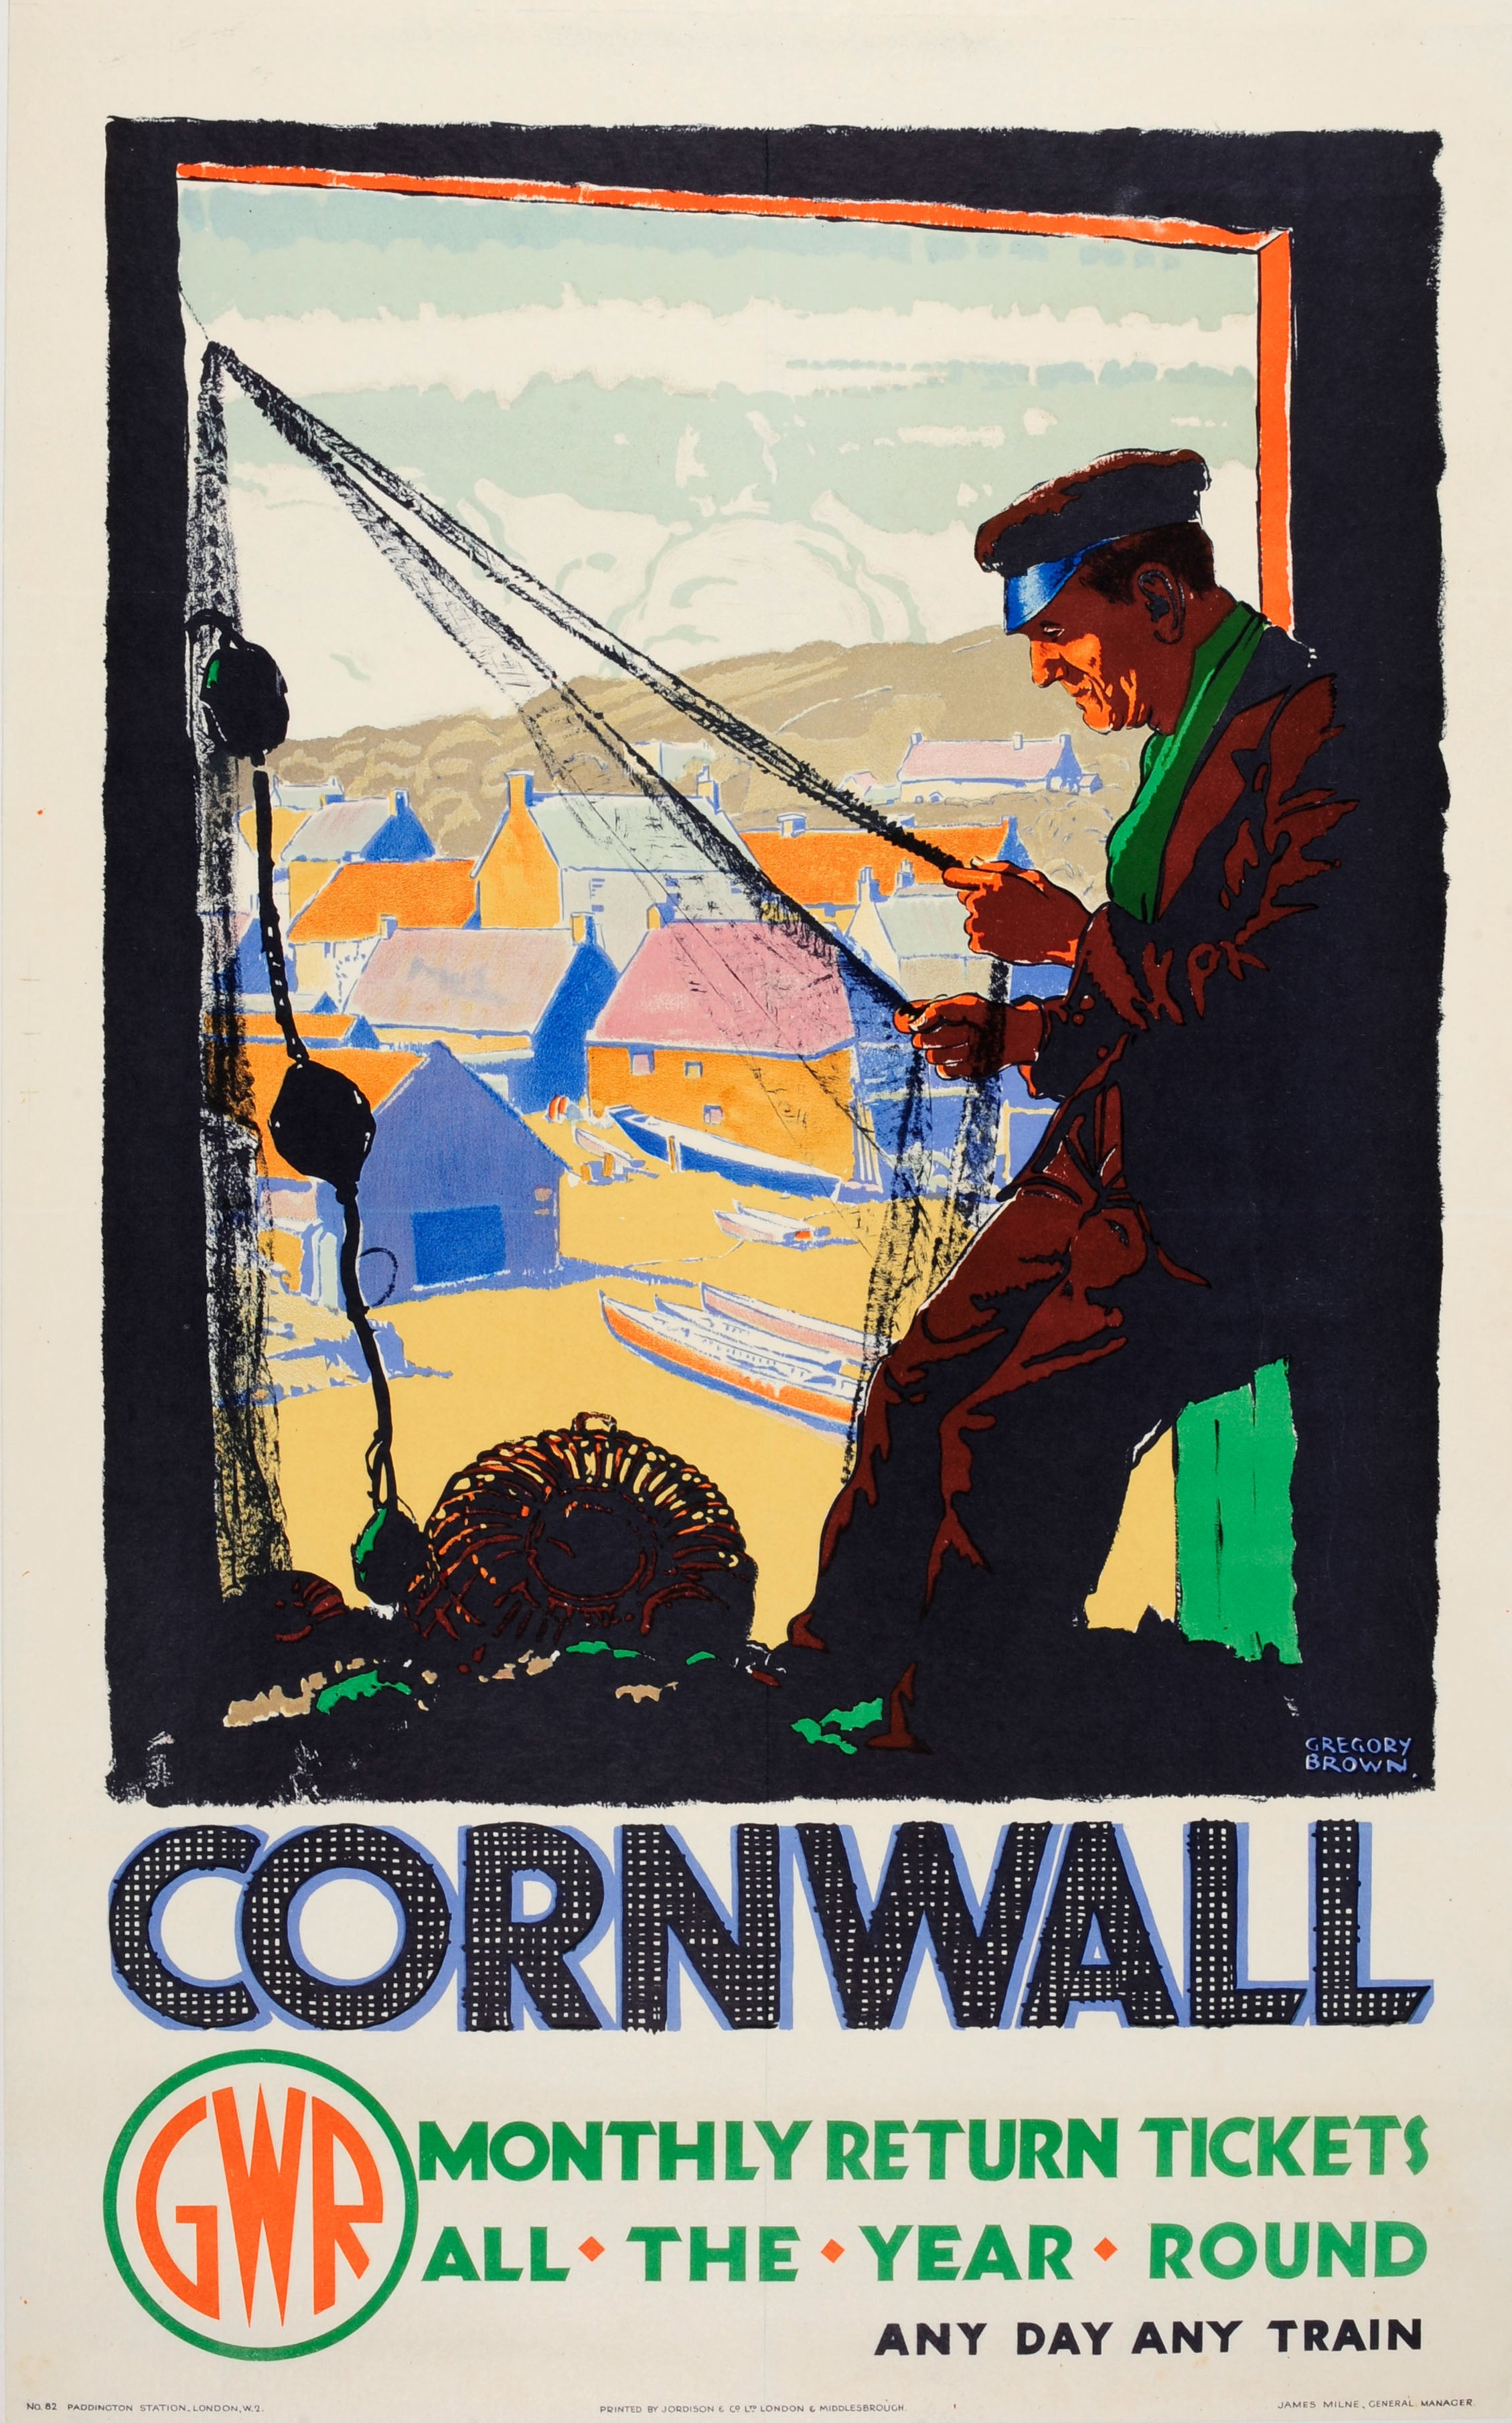 Original Vintage GWR Great Western Railway Travel Poster For Cornwall By Train